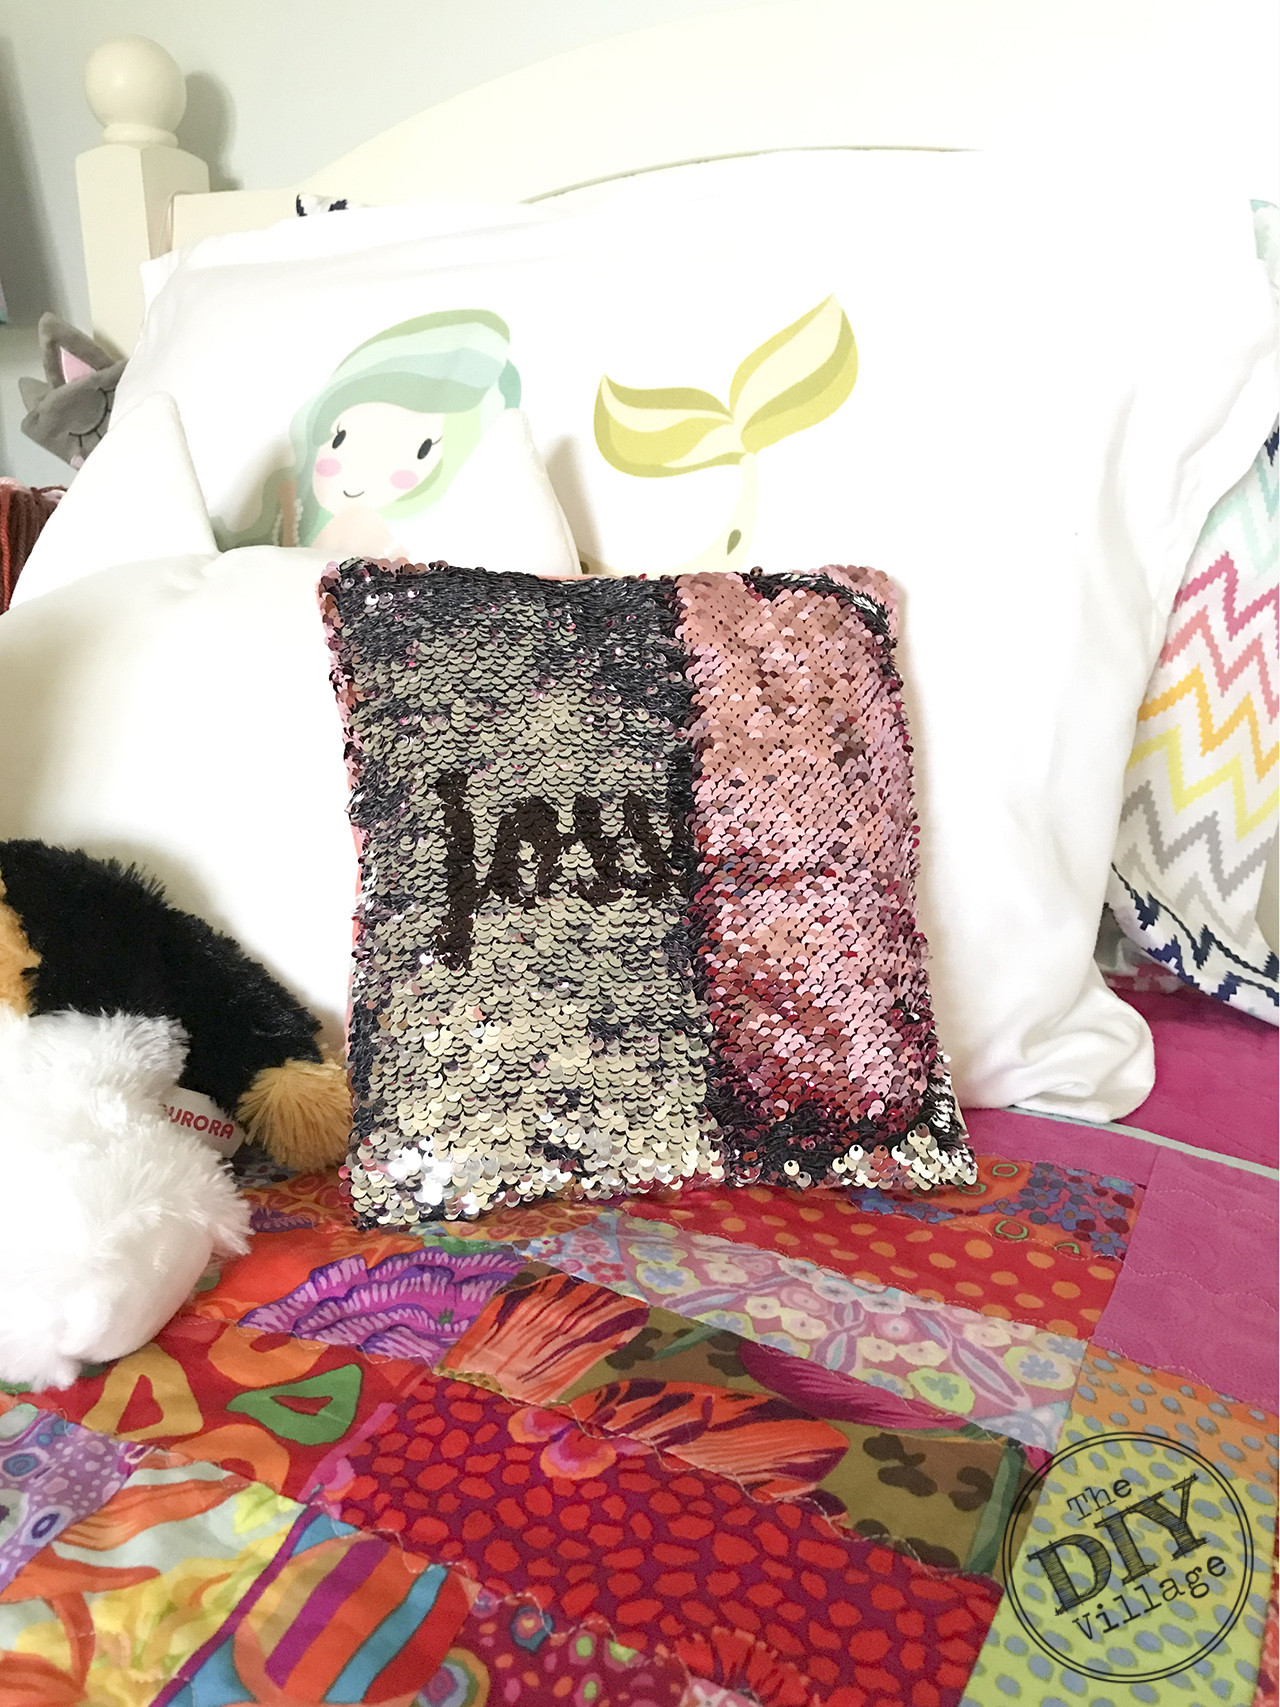 Easy Dollar Store Project - DIY Hidden Message sequin Pillow. They can be personalized with names, messages, anything! Such a fun idea. #hiddenmessagepillow #diycraft #sequinpillow #personalizedgift #monogrmamedgift #bling #sparkle #dollarstorecraft #dollarstorechallenge #fastcraft